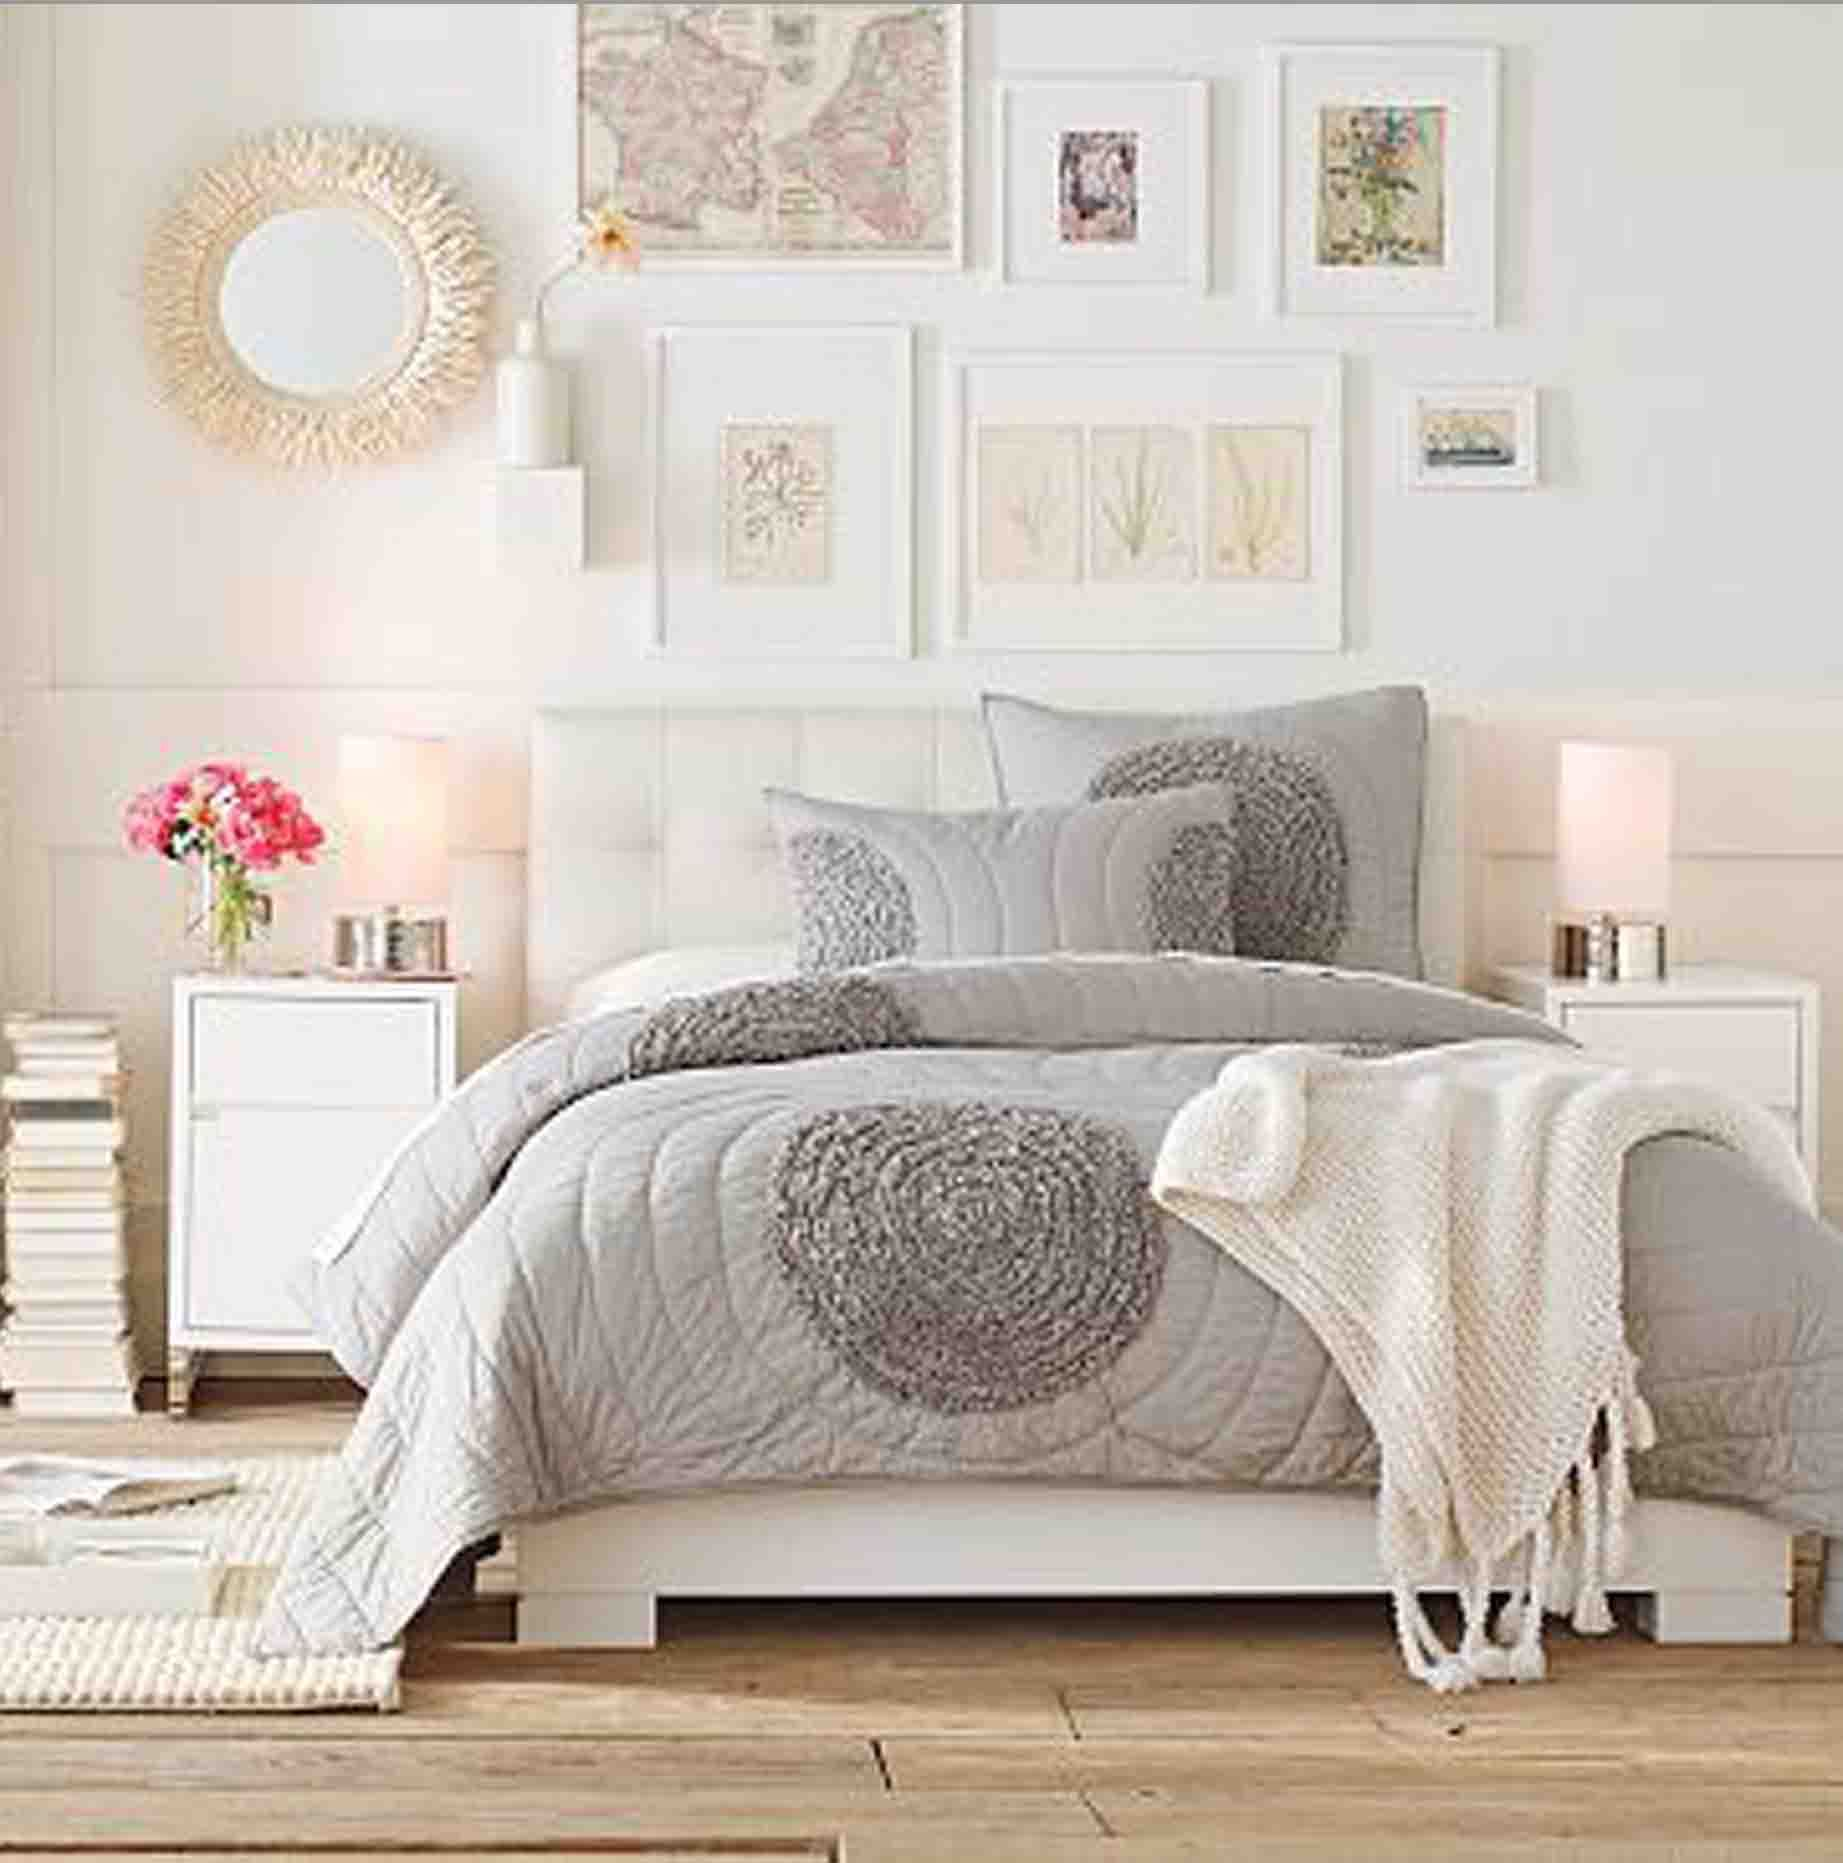 Light And Bright Bedroom Ideas Grey Nutral White Feminine